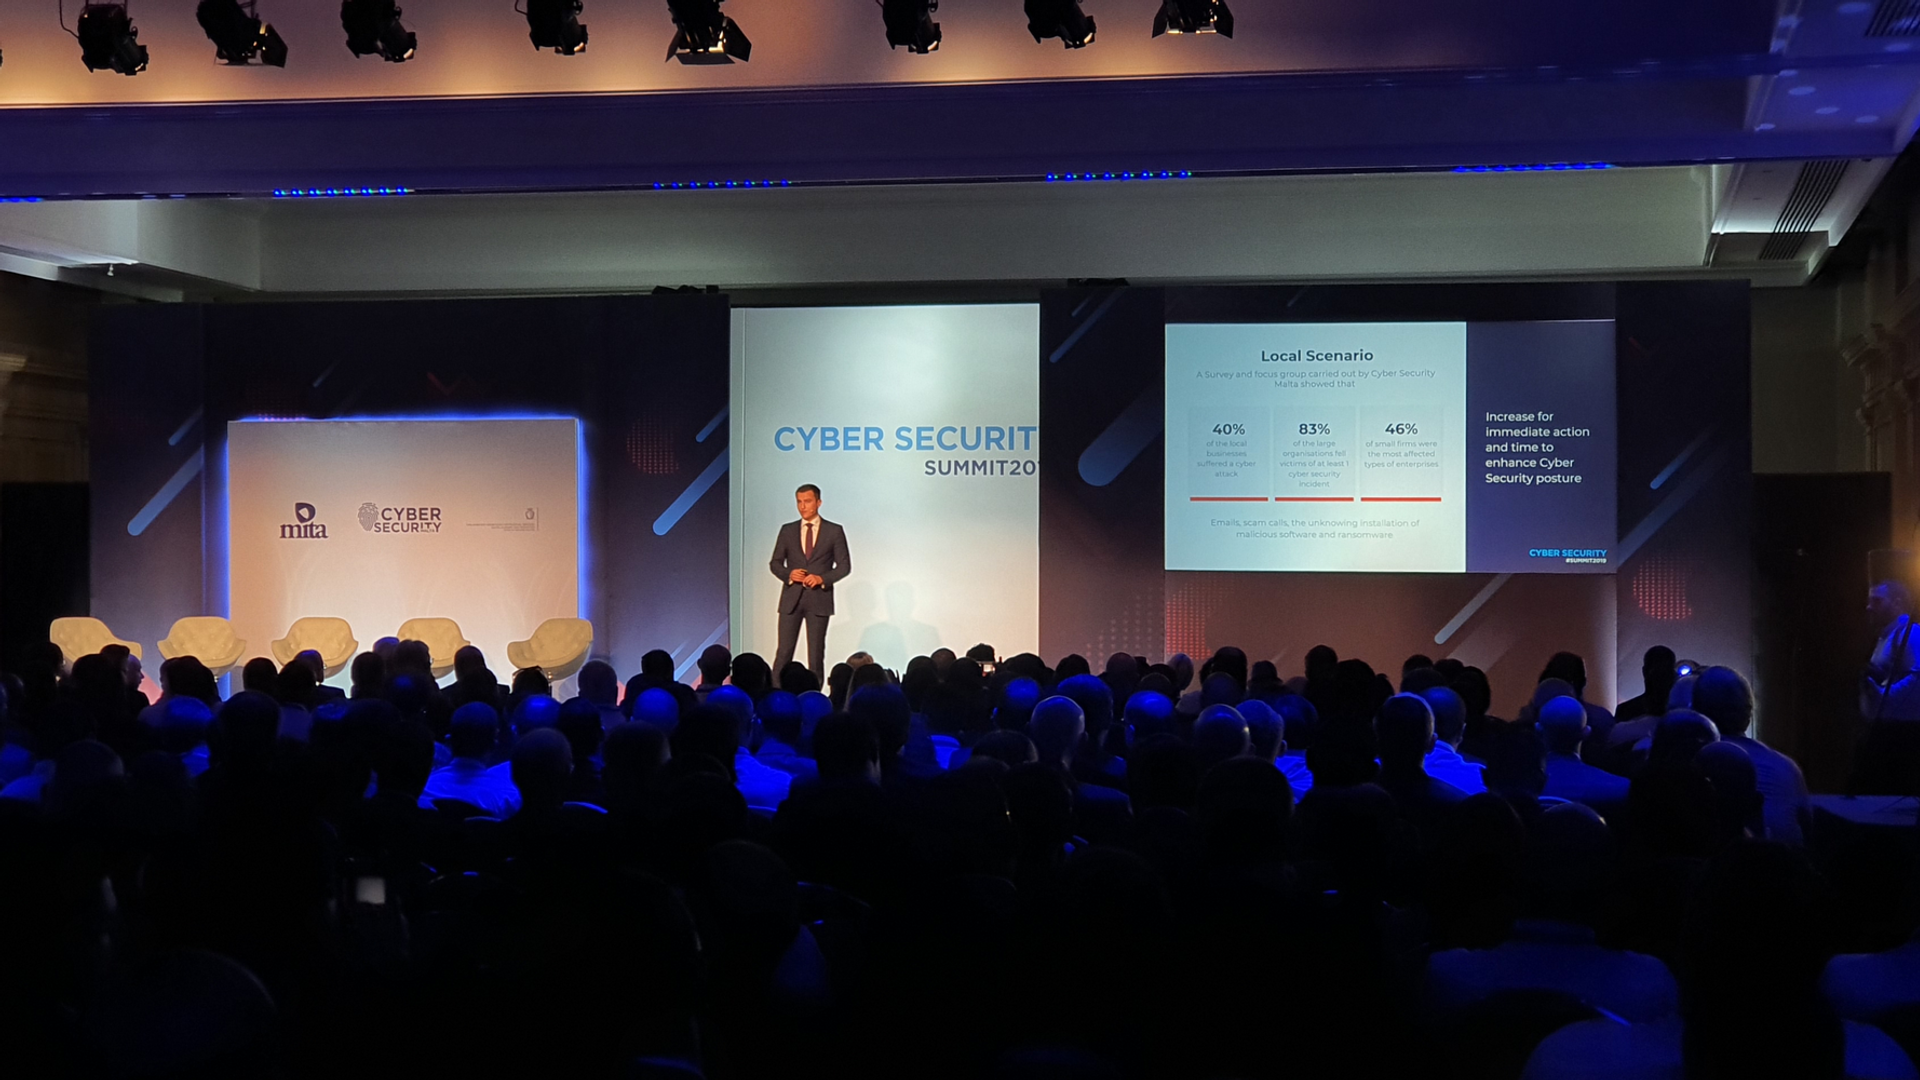 102019 - Westin - Conference - Cyber Sec